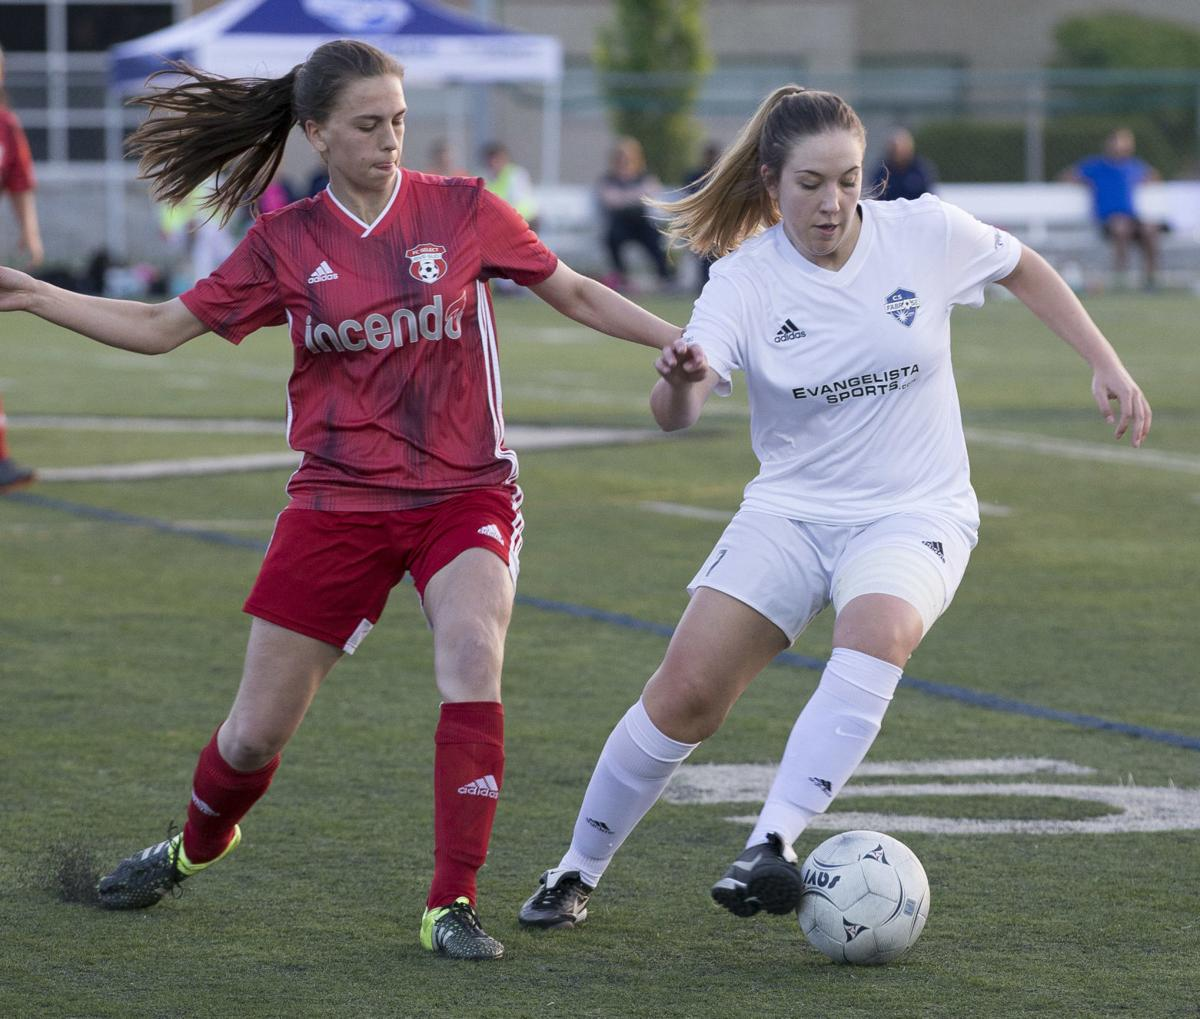 Rive-Sud move forward with 3-0 win over Fabrose